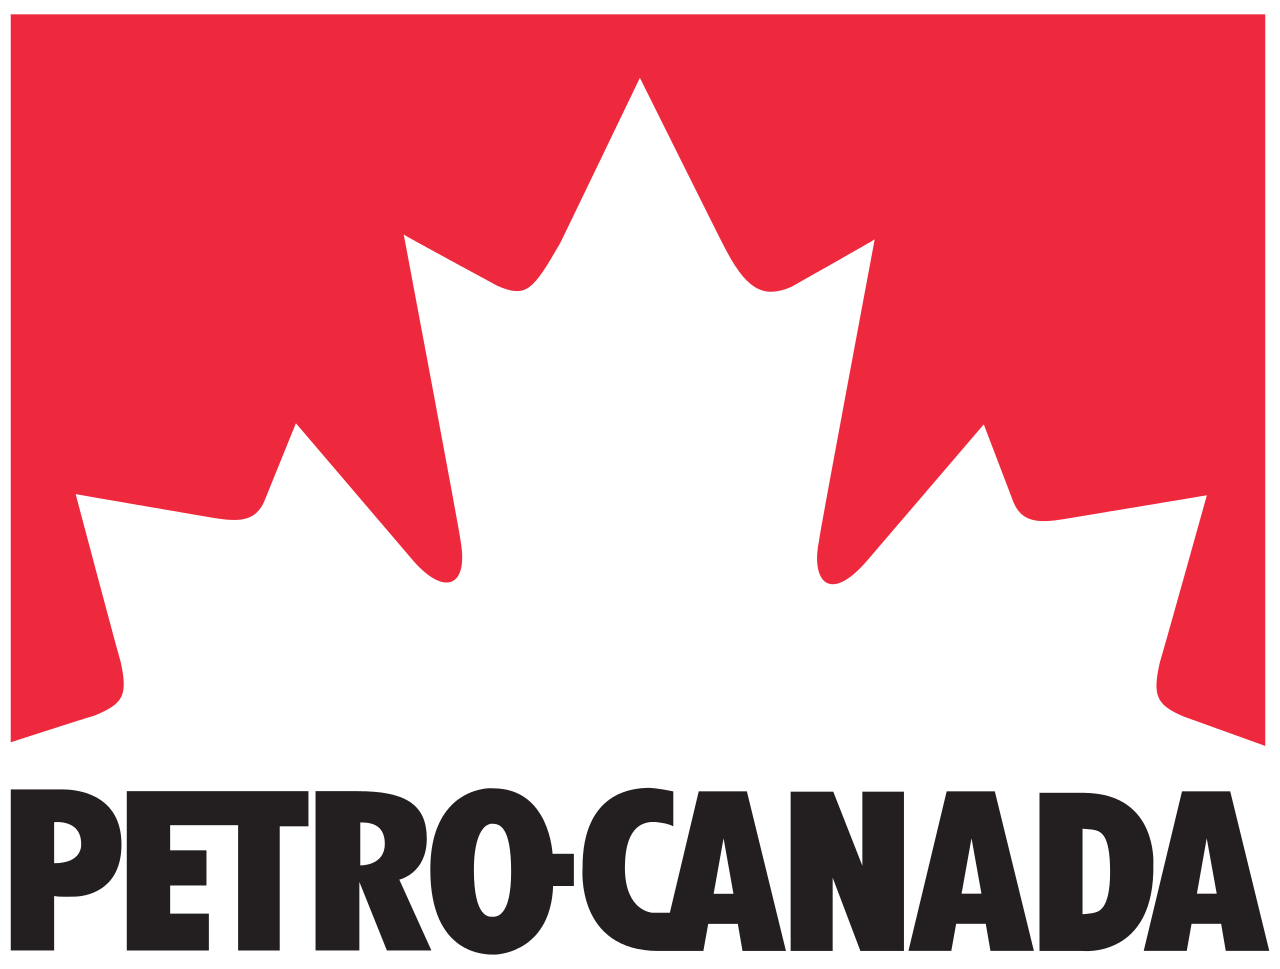 SOME EDMONTON PETRO-CAN STATIONS RUN OUT OF GAS---GAS PRICES COULD JUMP